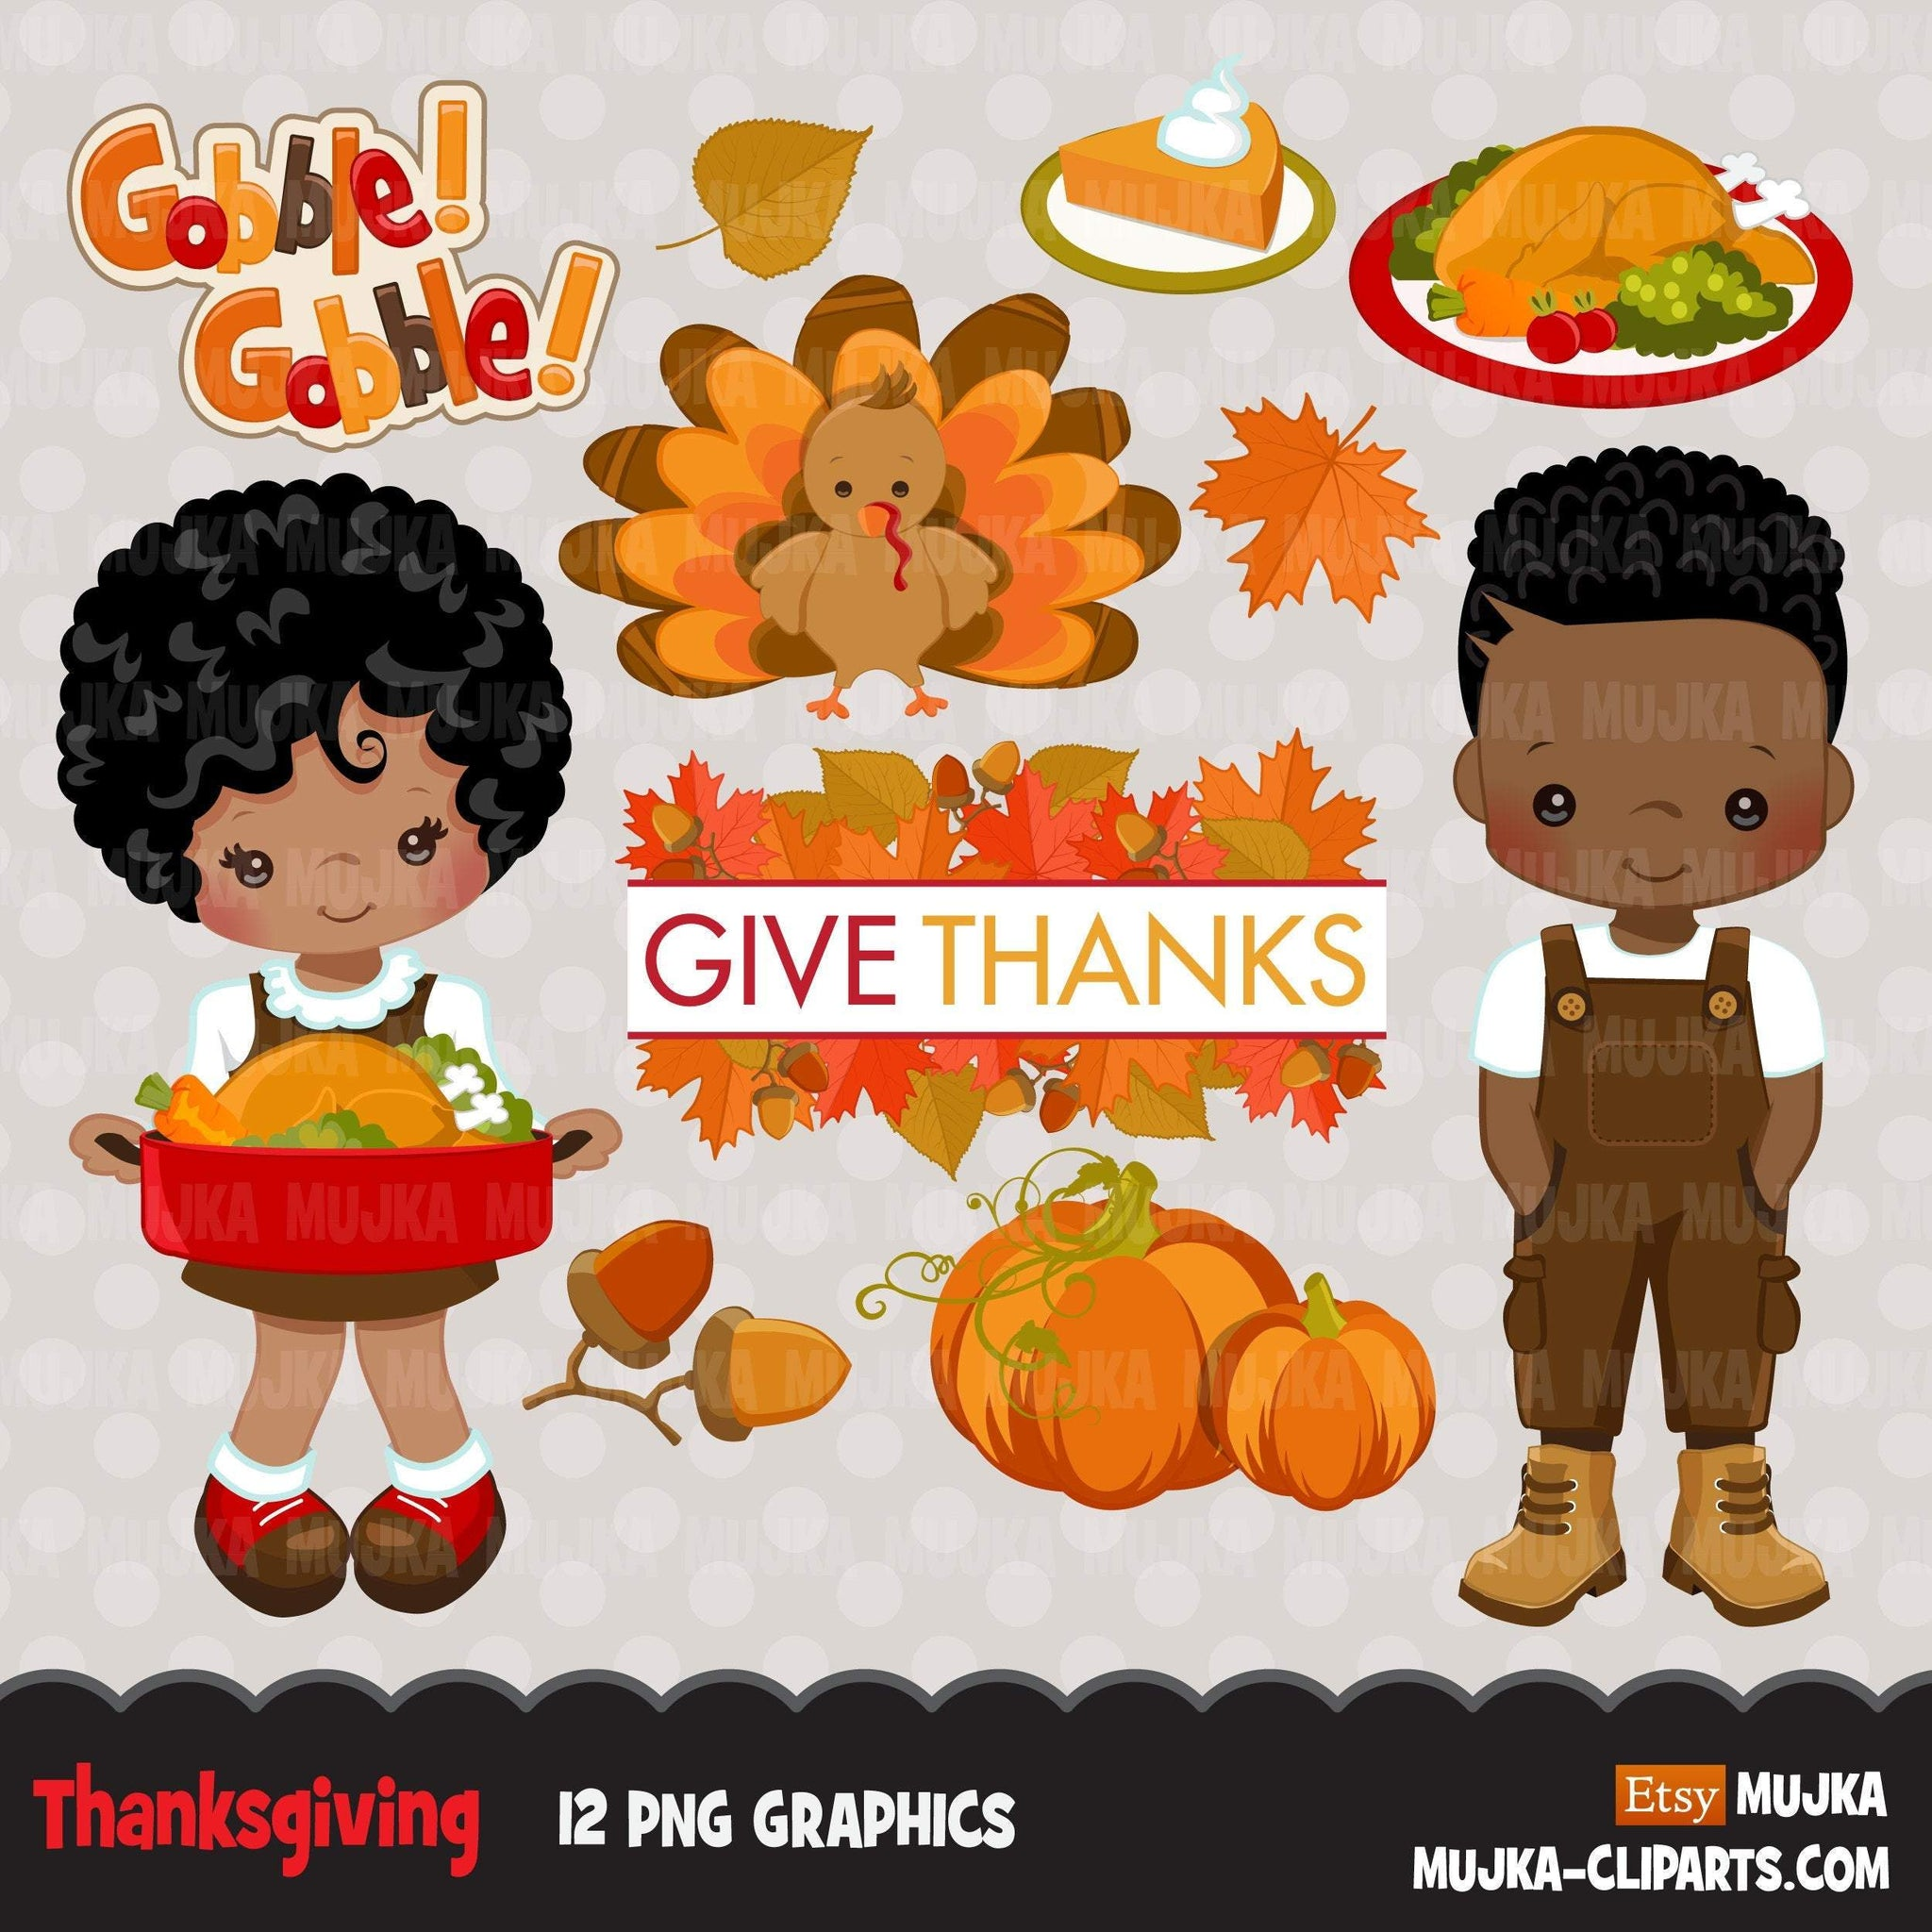 Thanksgiving Clipart, black afro thanksgiving graphics with gobble gobble Turkey and fall, boy and girl